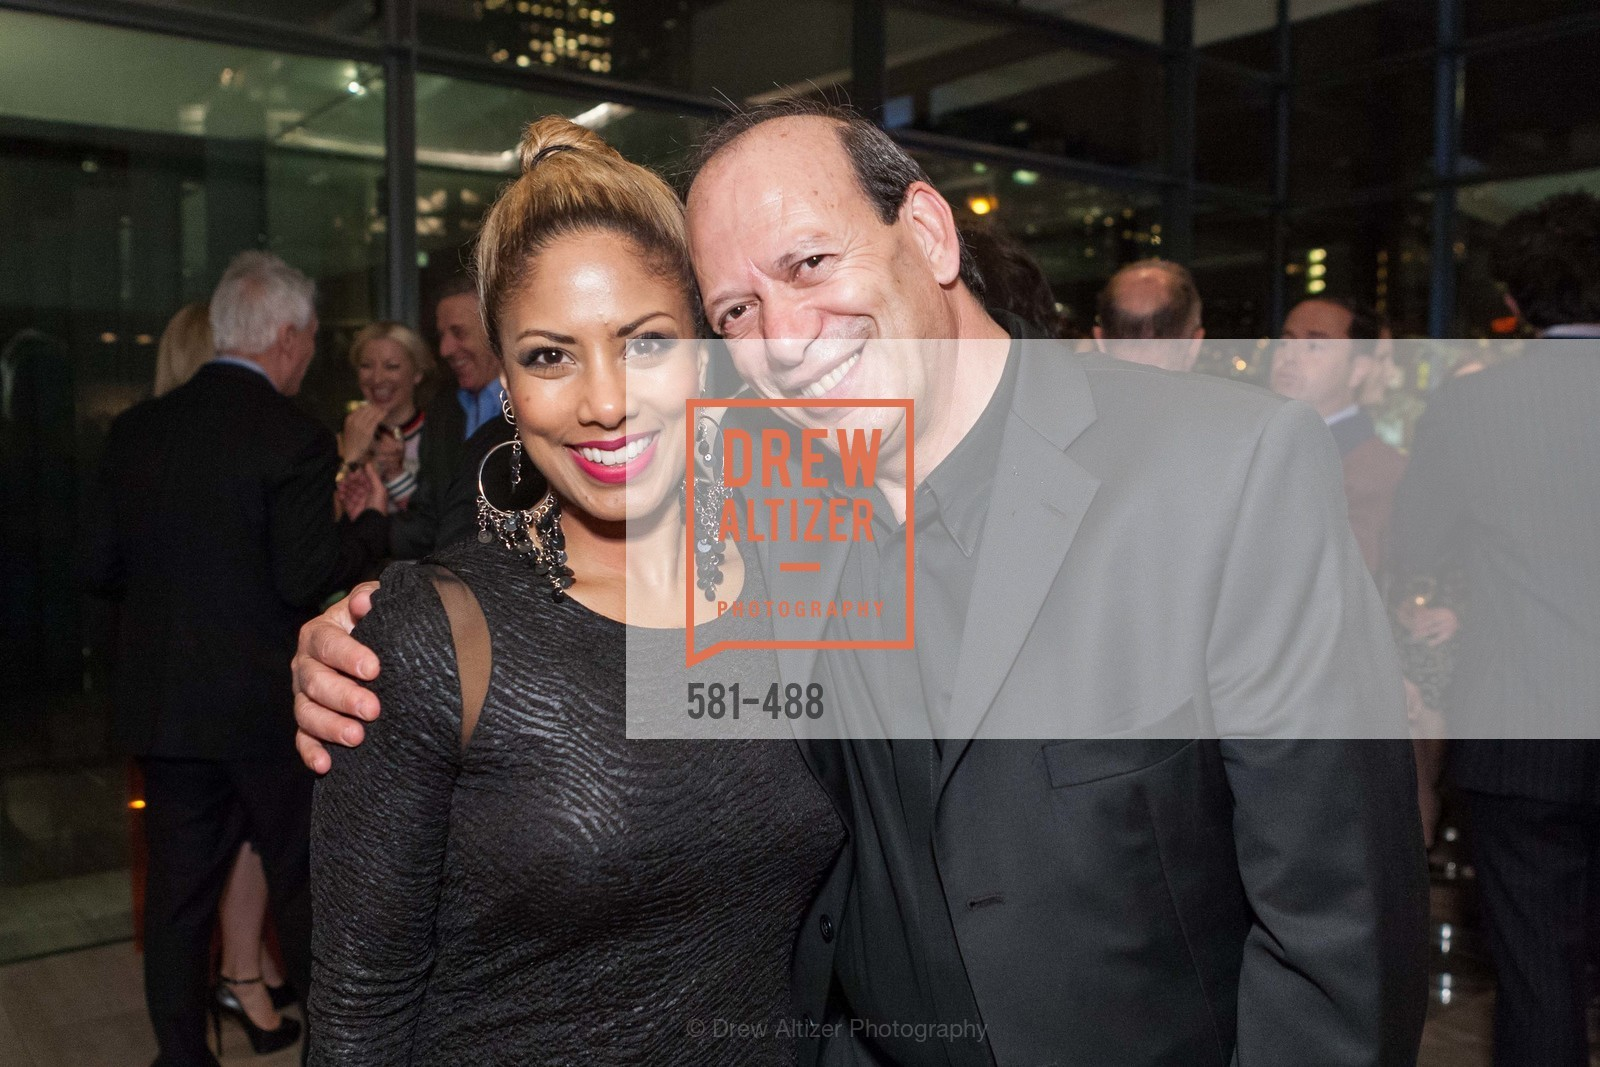 Noureddine Azouaou, SONYA MOLODETSKAYA's Birthday Party, US. The Battery Penthouse, April 1st, 2014,Drew Altizer, Drew Altizer Photography, full-service agency, private events, San Francisco photographer, photographer california